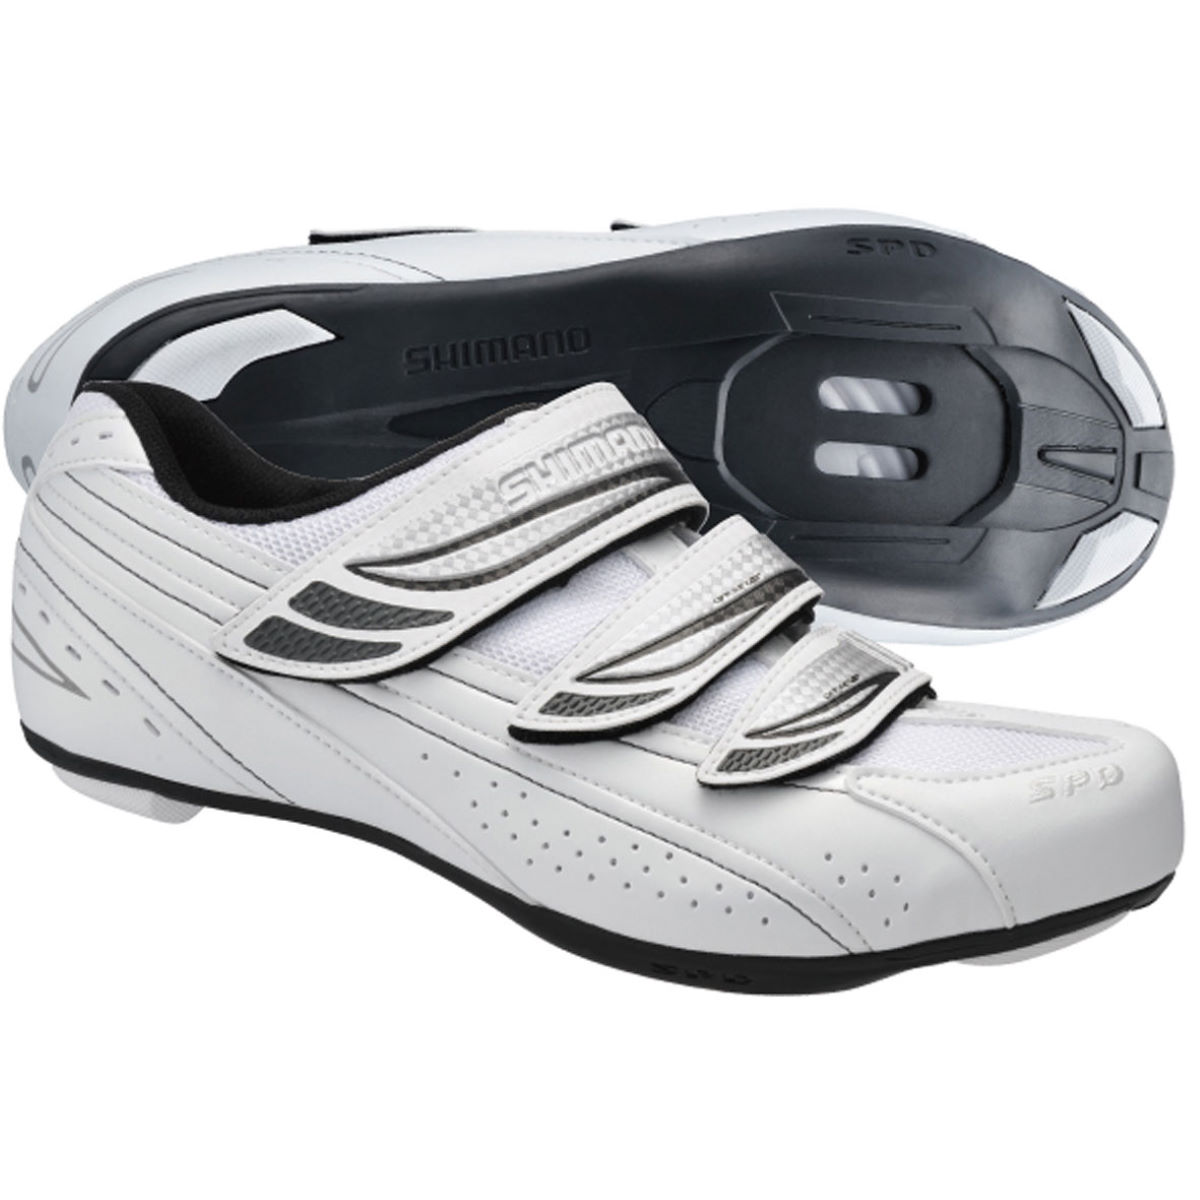 Womens WR35 SPD Touring Shoes Road